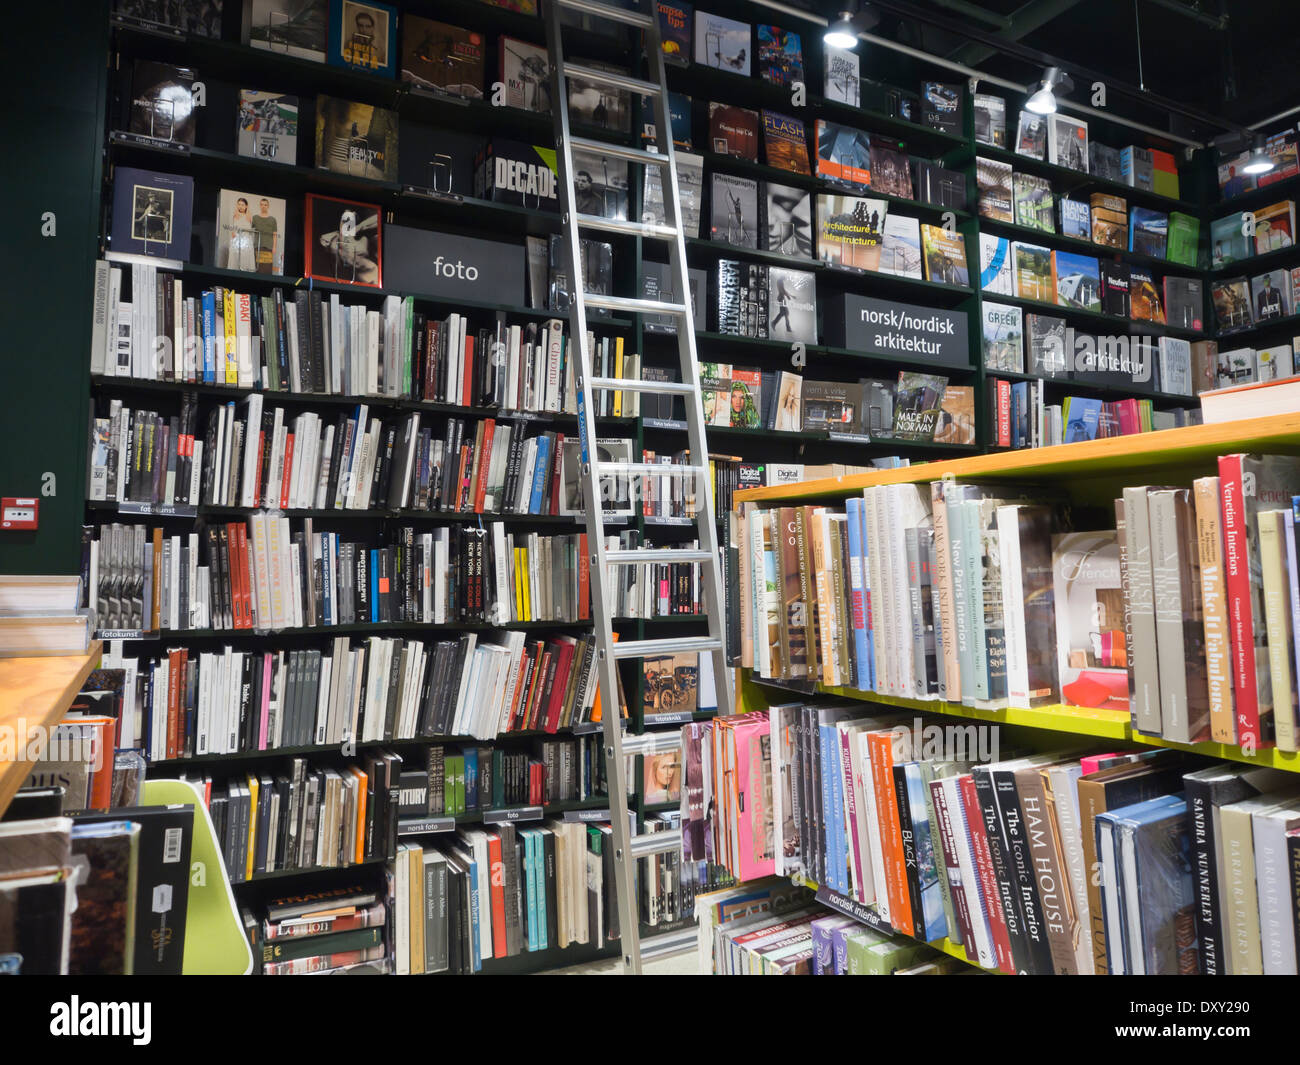 Norway has a good selection of bookshops with many languages represented, here the photo and architecture section at Tanum Oslo - Stock Image